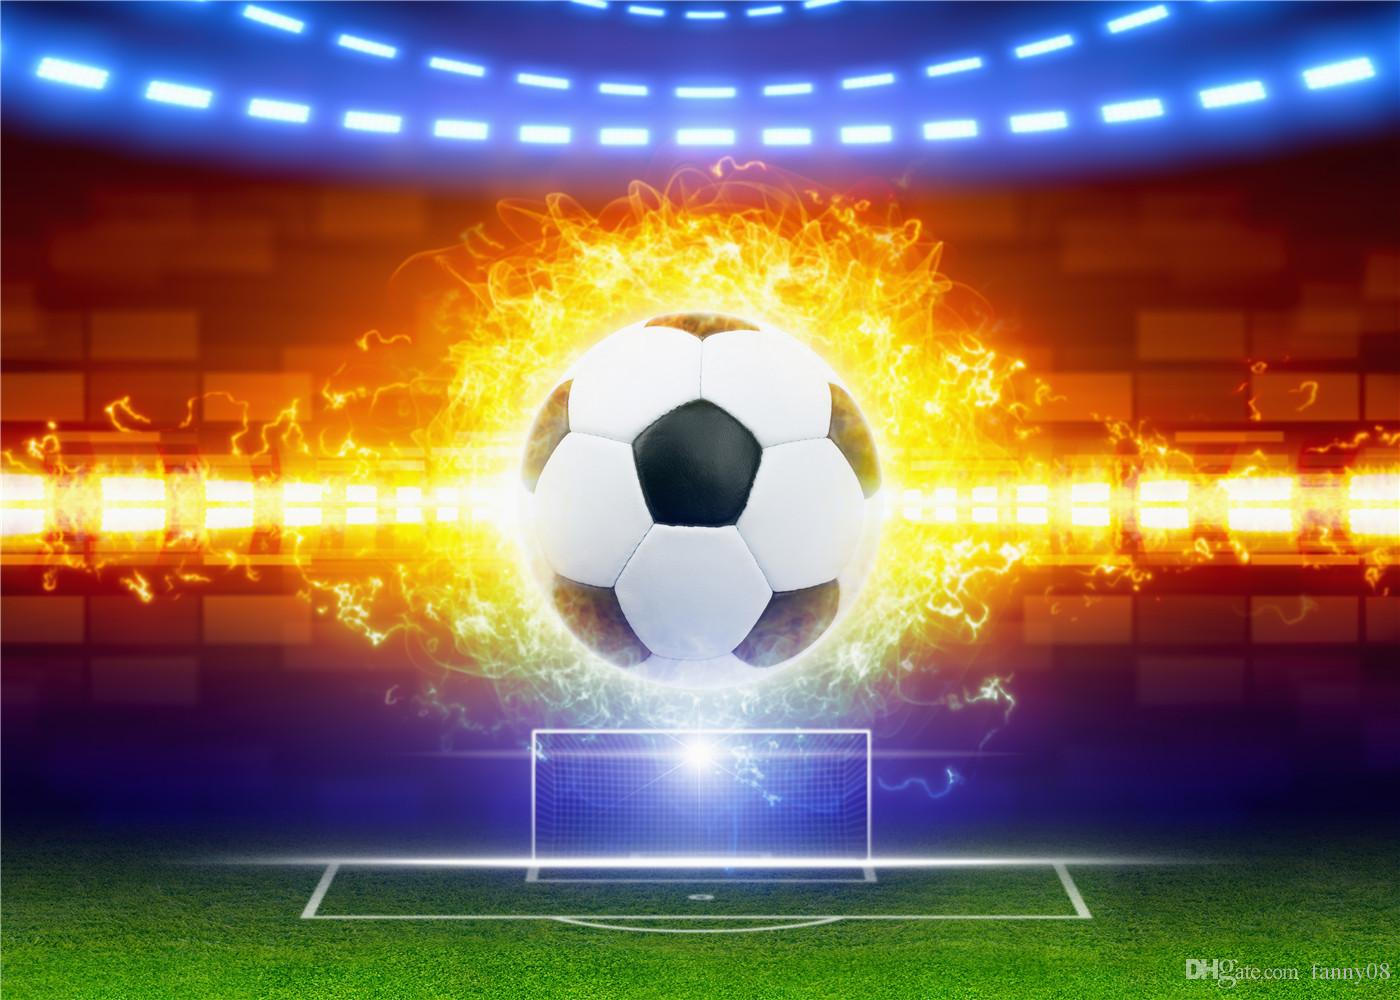 The Gallery For Flaming Football Background Images: 2018 Susu Flaming Football Kickoff Photography Backdrops